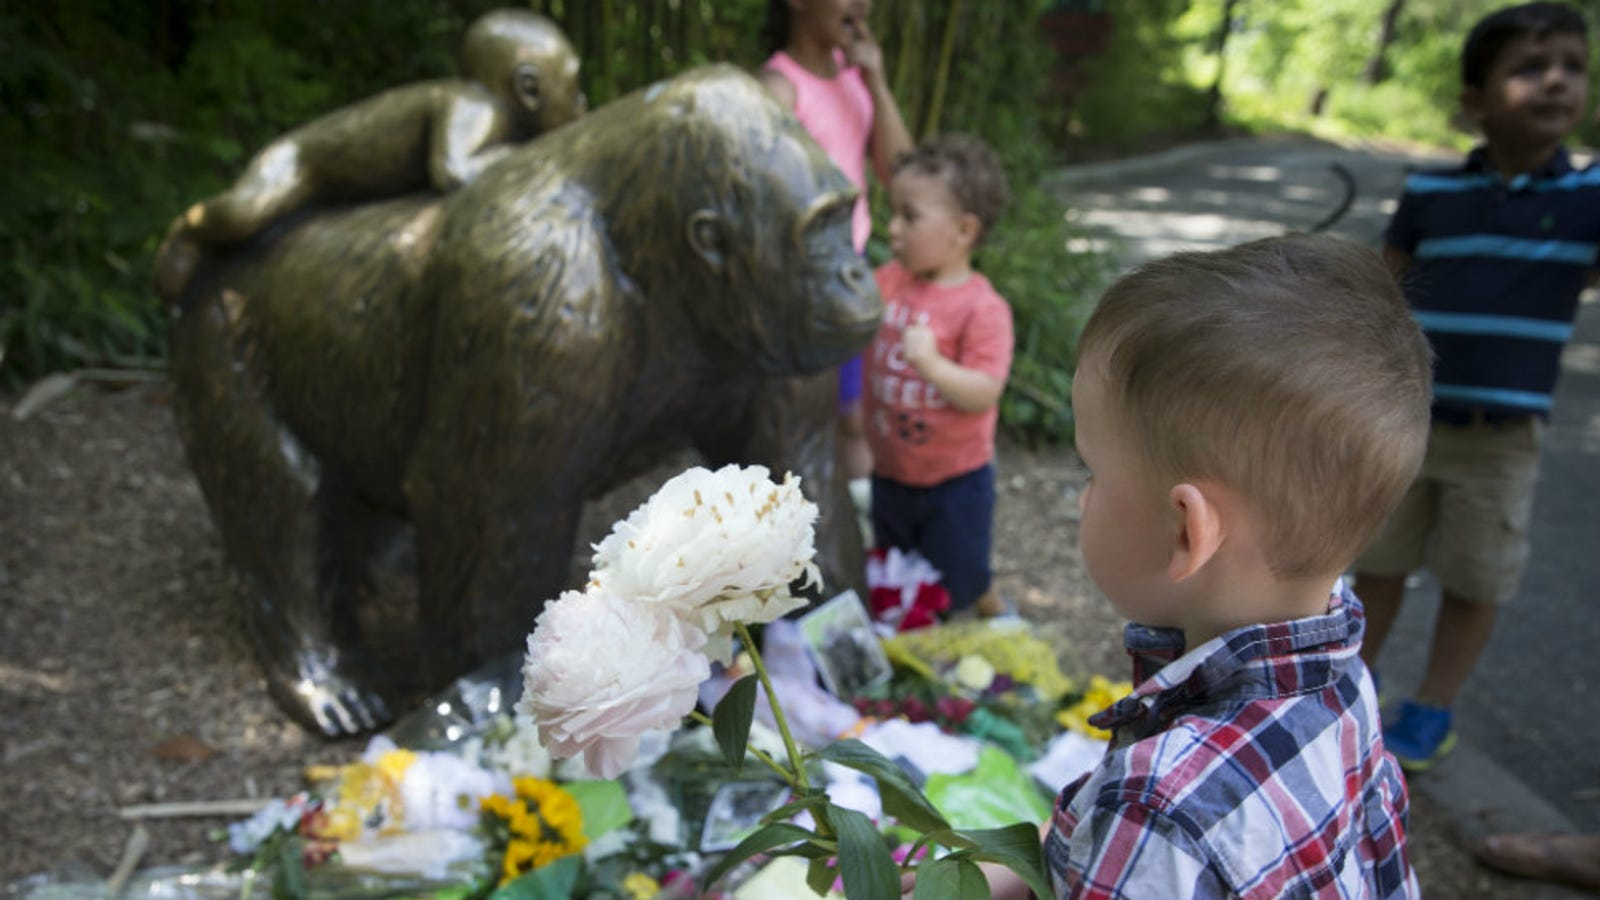 Outraged Gorilla-Lovers Are Threatening the Wrong Michelle Gregg on